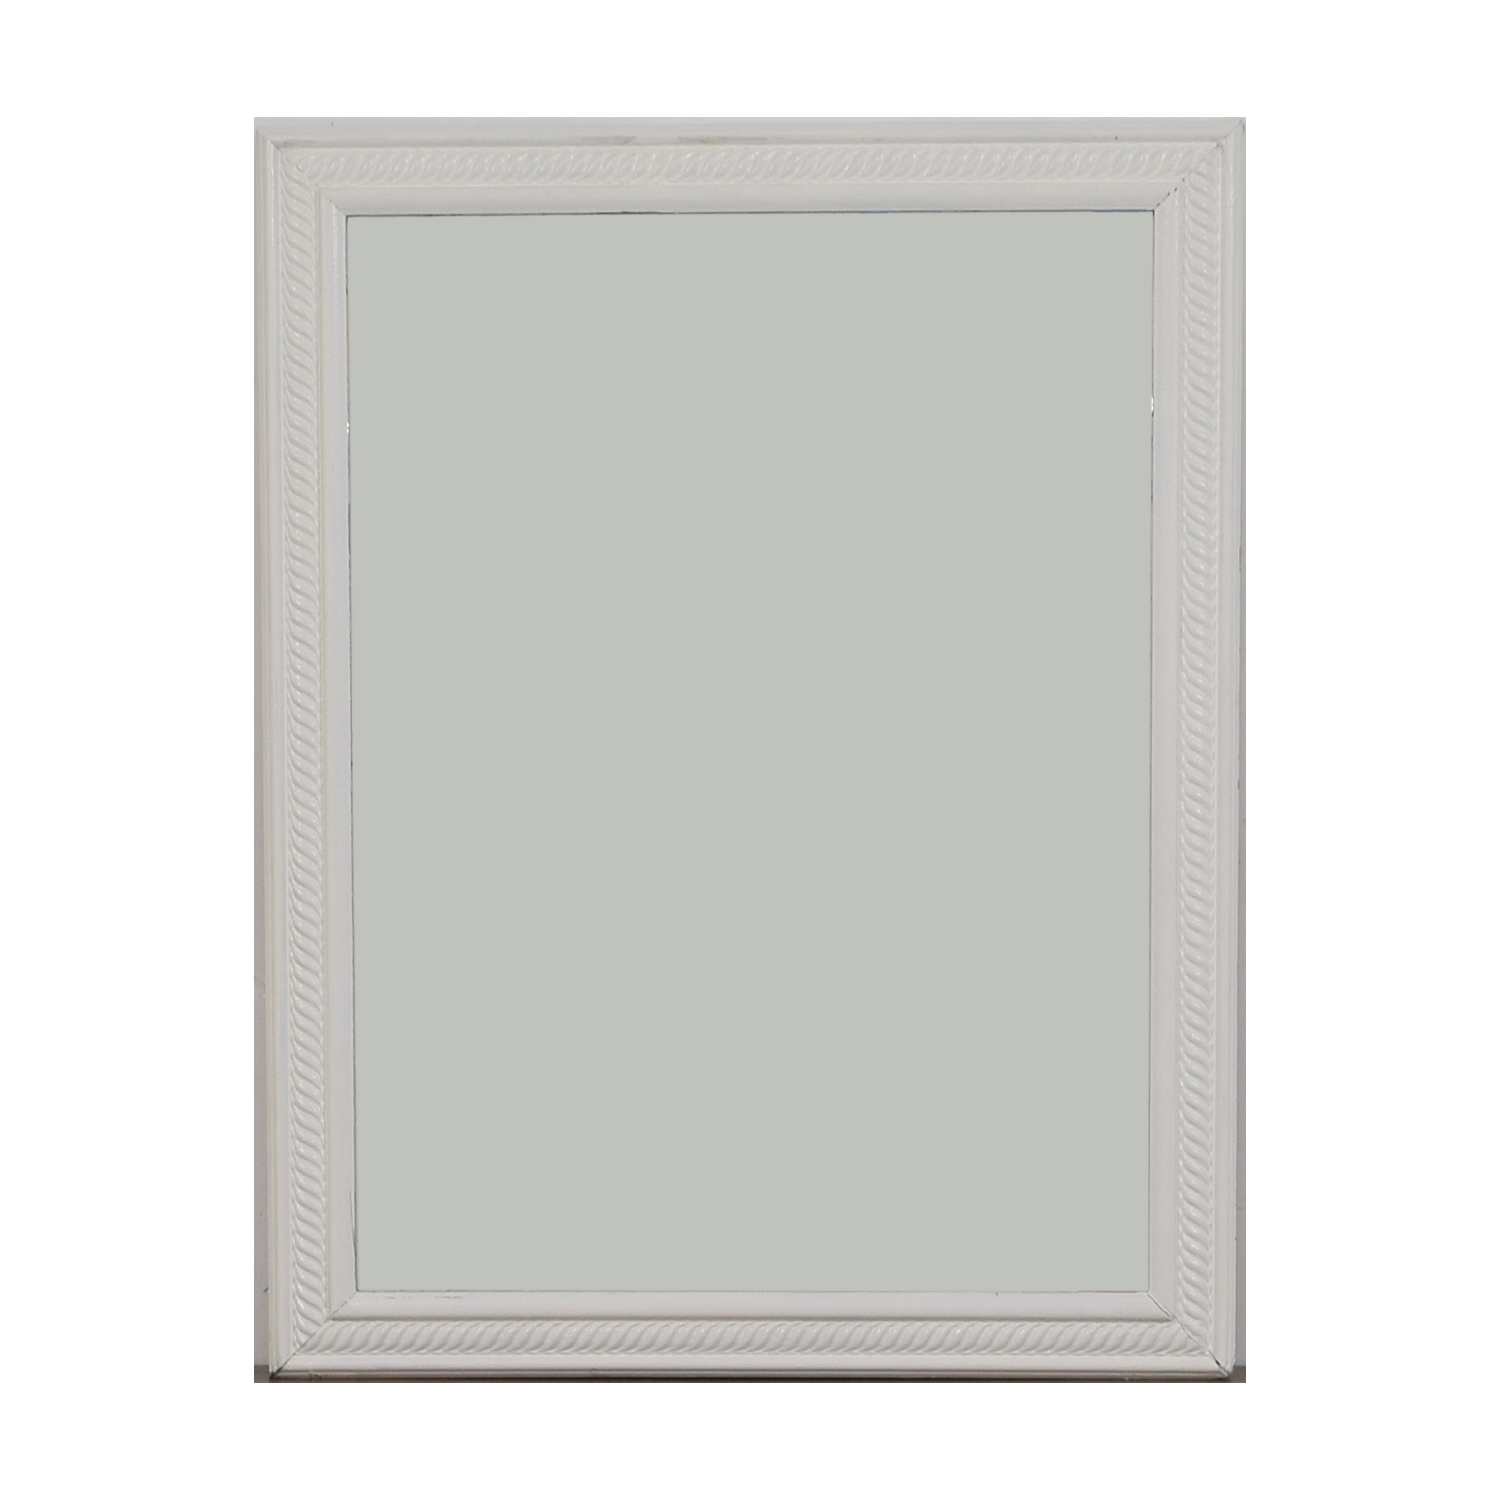 [%79% Off – White Frames Wall Mirror / Decor Inside Fashionable Frames For Wall Mirrors|frames For Wall Mirrors For Well Known 79% Off – White Frames Wall Mirror / Decor|well Known Frames For Wall Mirrors With 79% Off – White Frames Wall Mirror / Decor|most Recently Released 79% Off – White Frames Wall Mirror / Decor In Frames For Wall Mirrors%] (View 9 of 20)